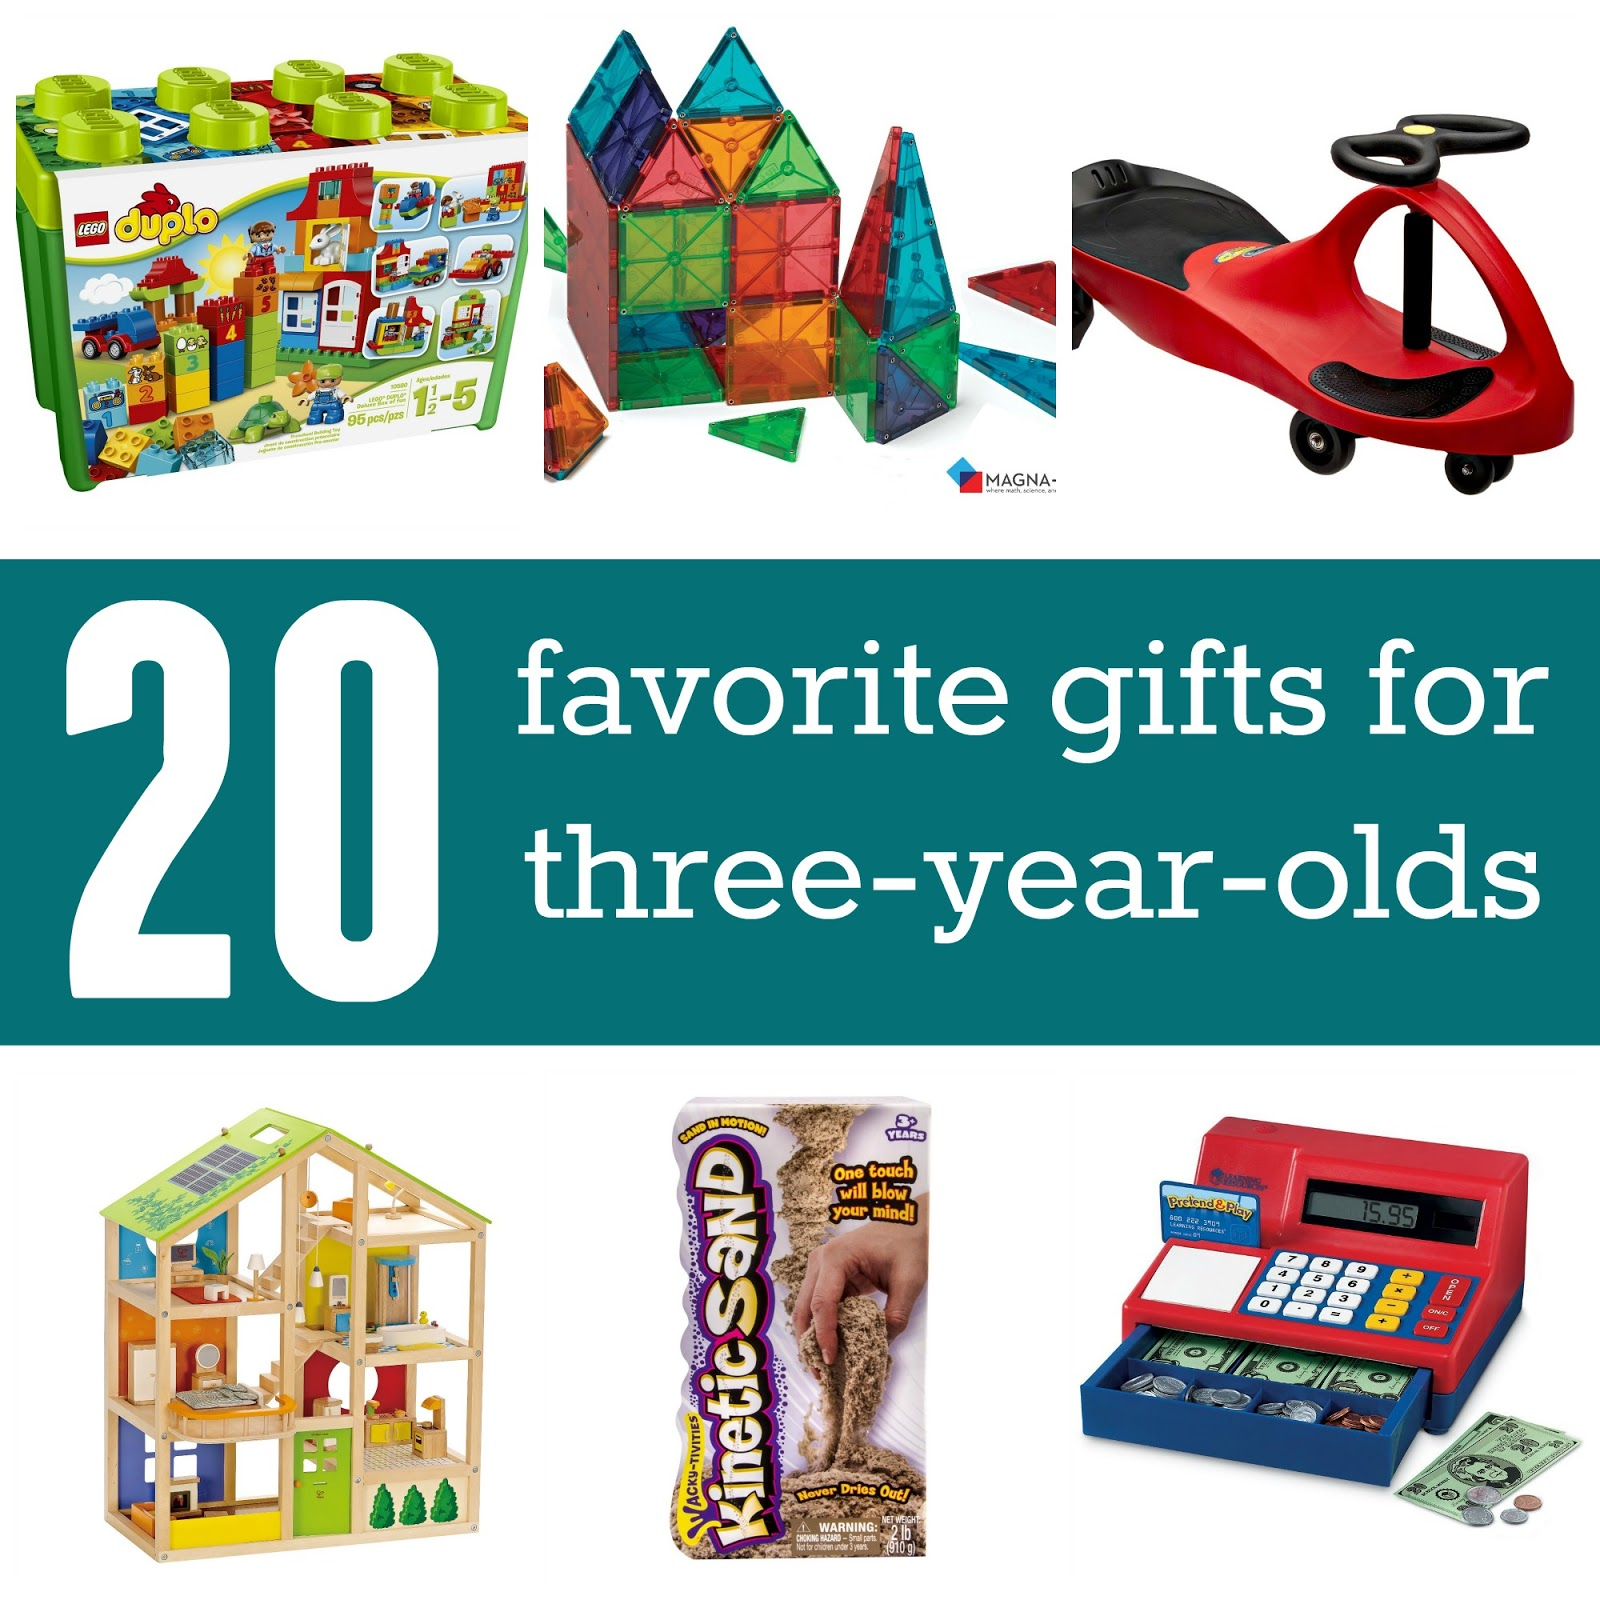 Toddler Approved Favorite Ts For 3 Year Olds